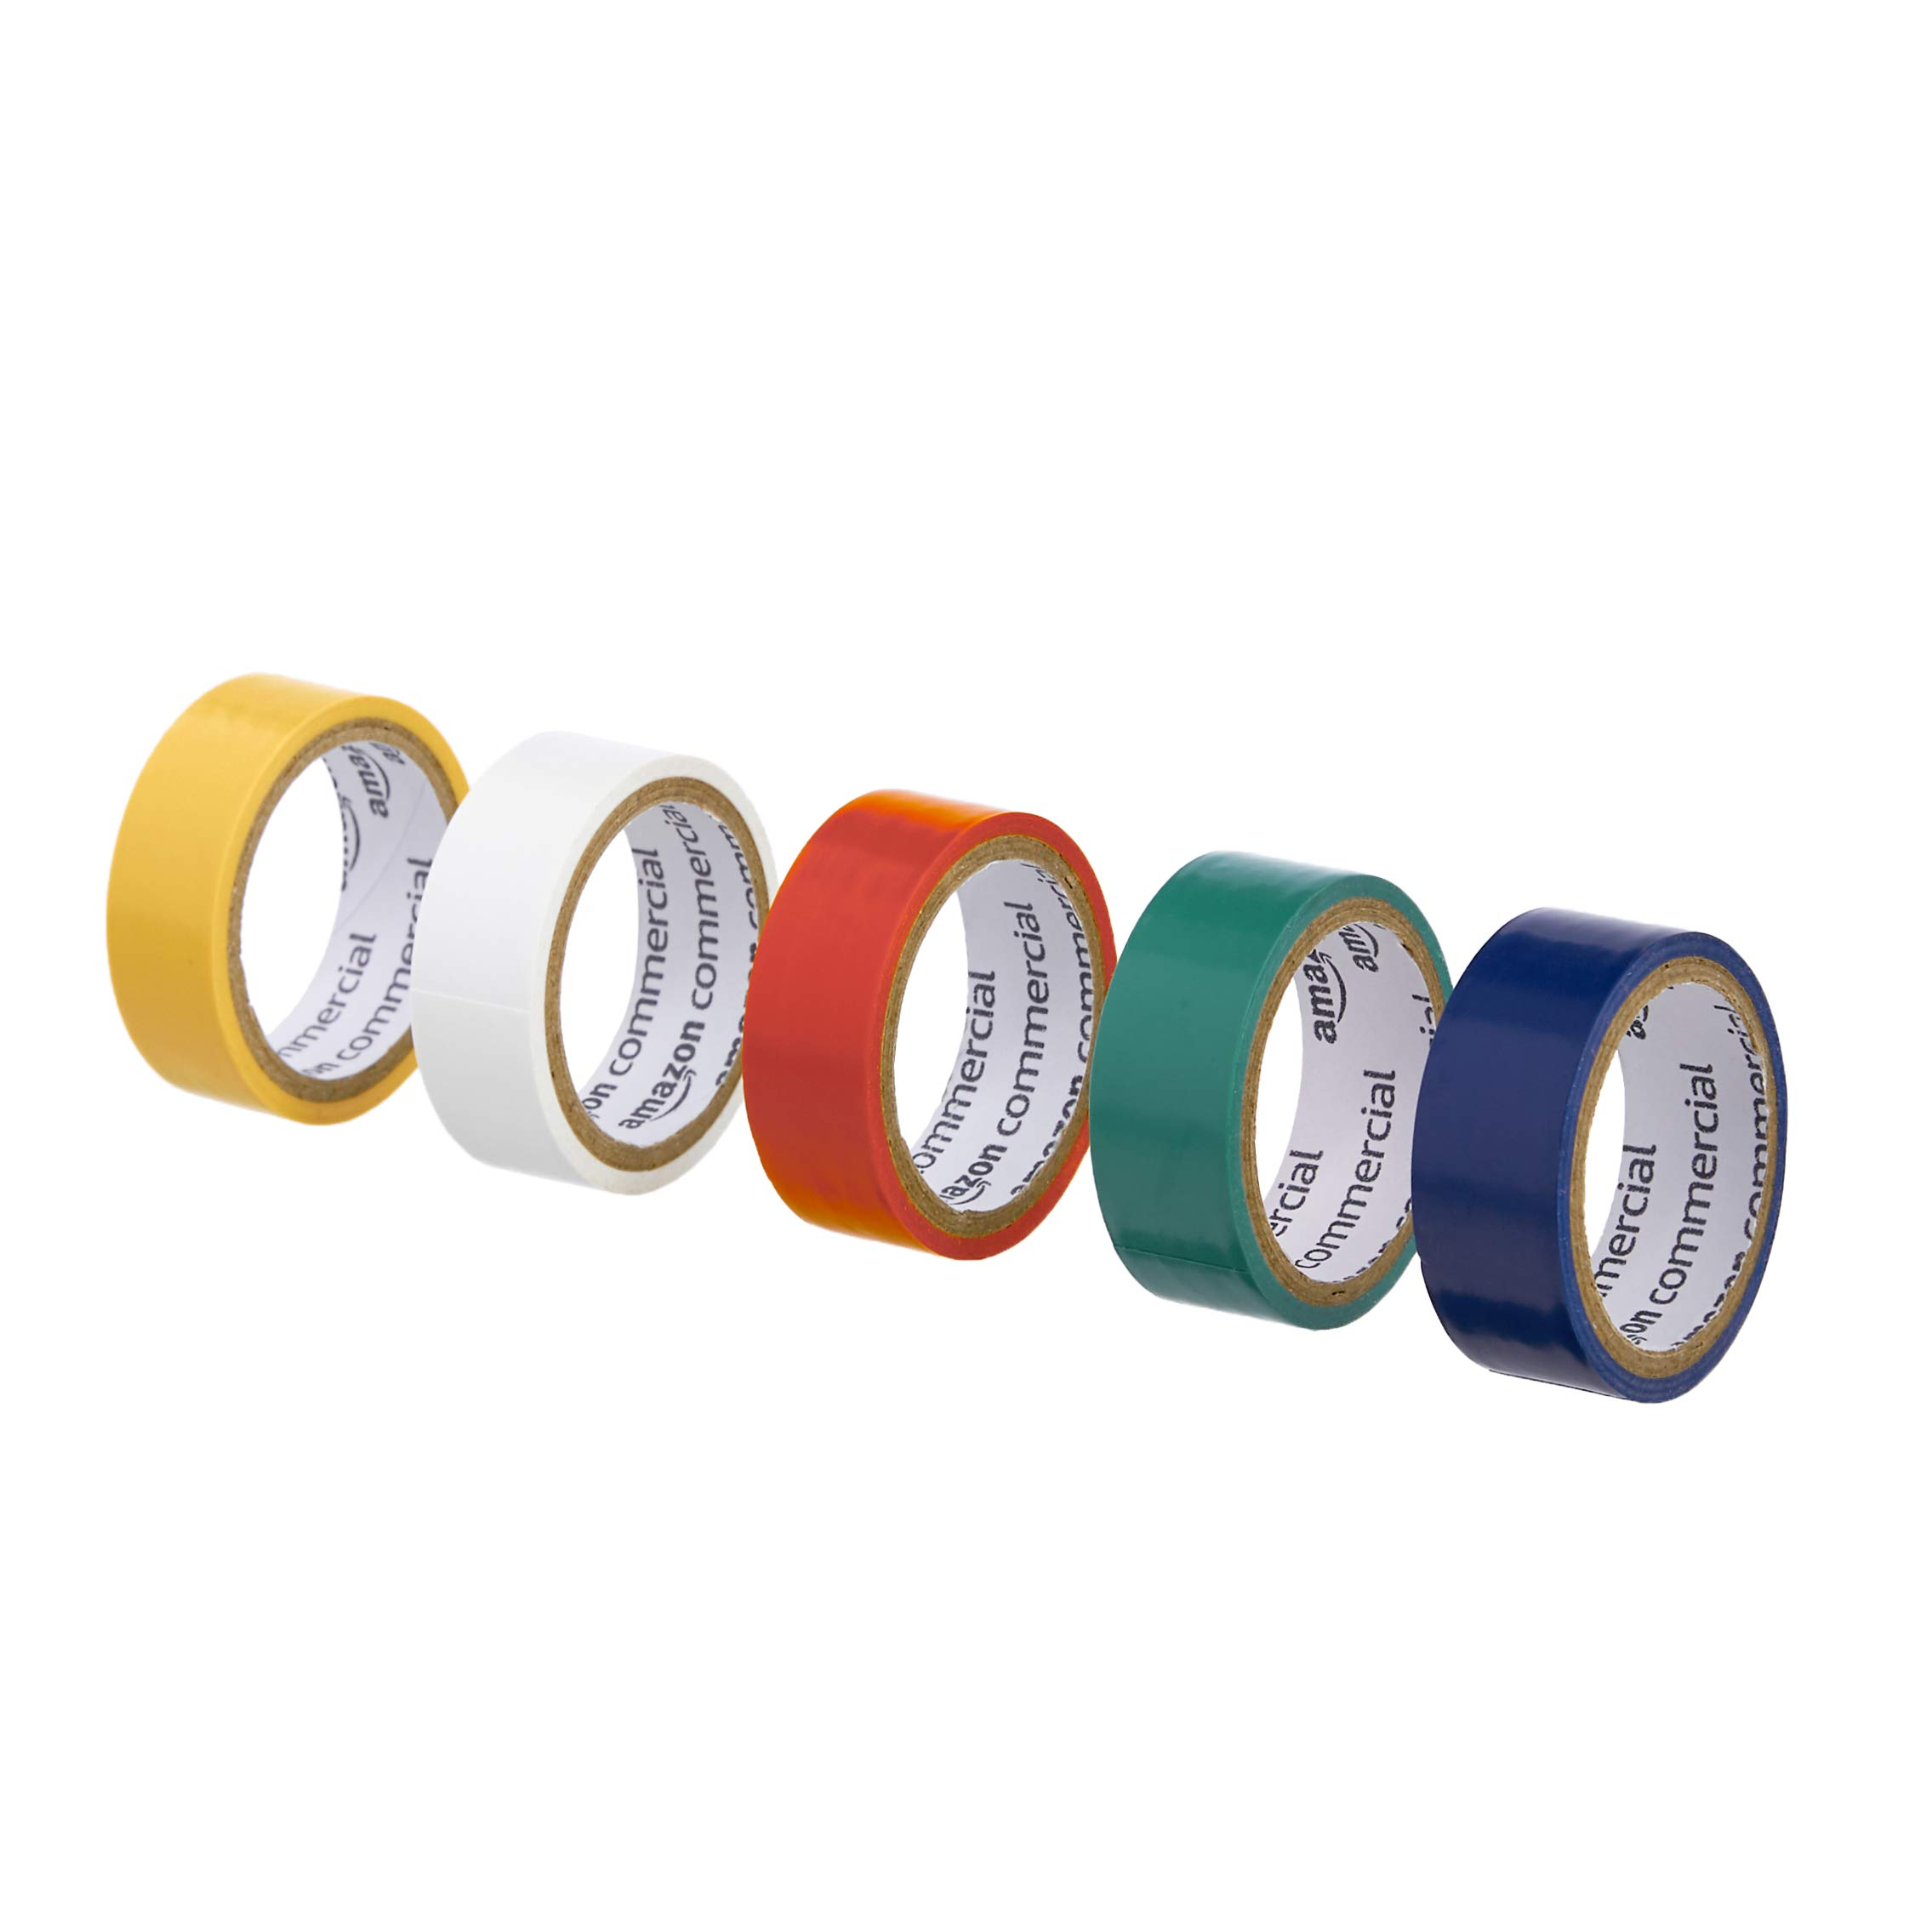 AmazonCommercial Vinyl Plastic Colored Tape, 3/4-inch by 3.47-Yard, Multi-Color, 10-Pack